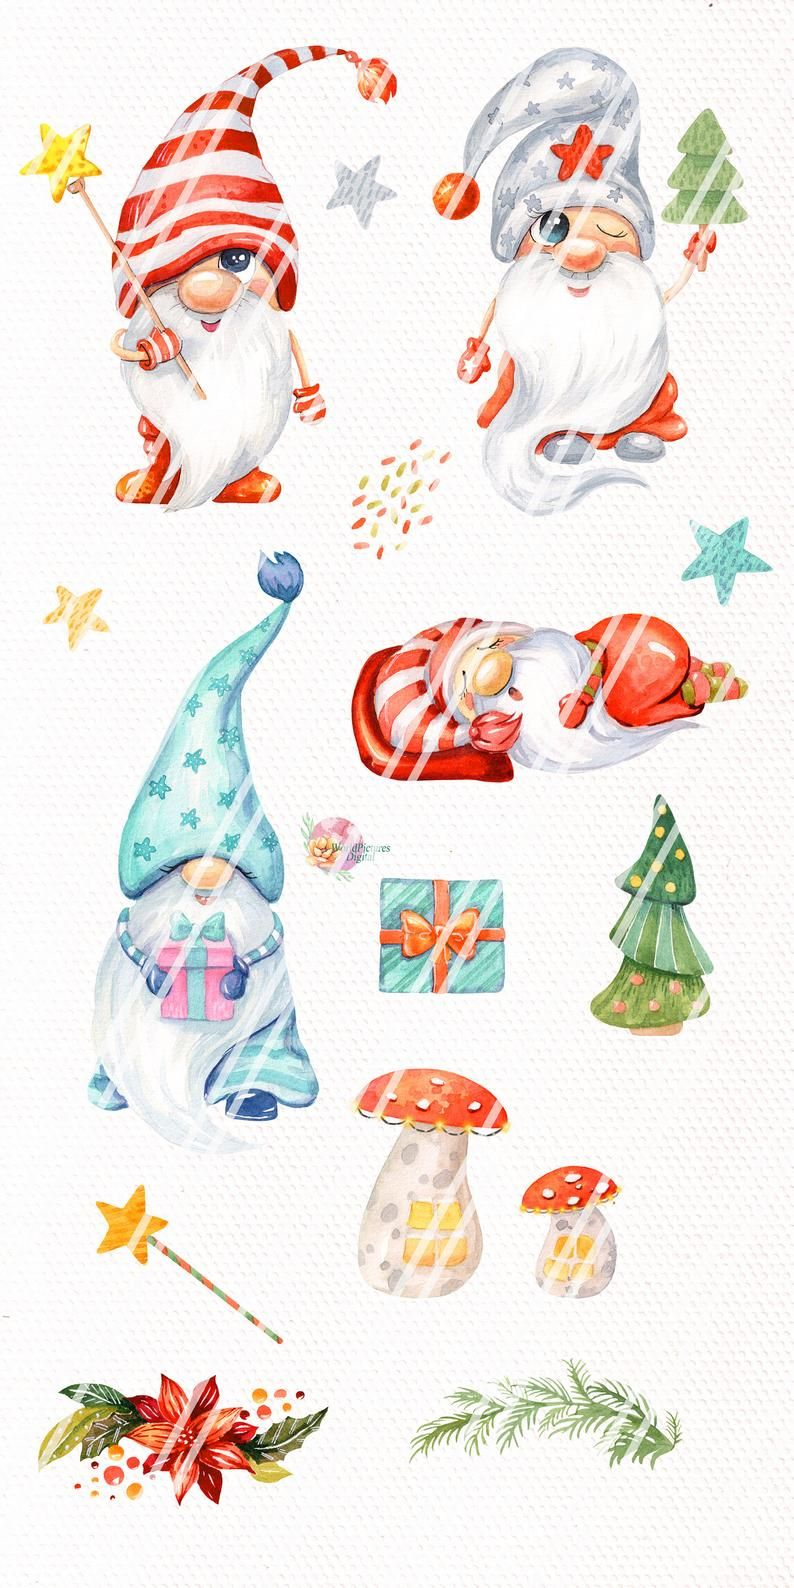 Christmas Gnomes Watercolor Clipart Nordic Scandinavian Etsy In 2020 Christmas Gnome Christmas Watercolor Holiday Painting